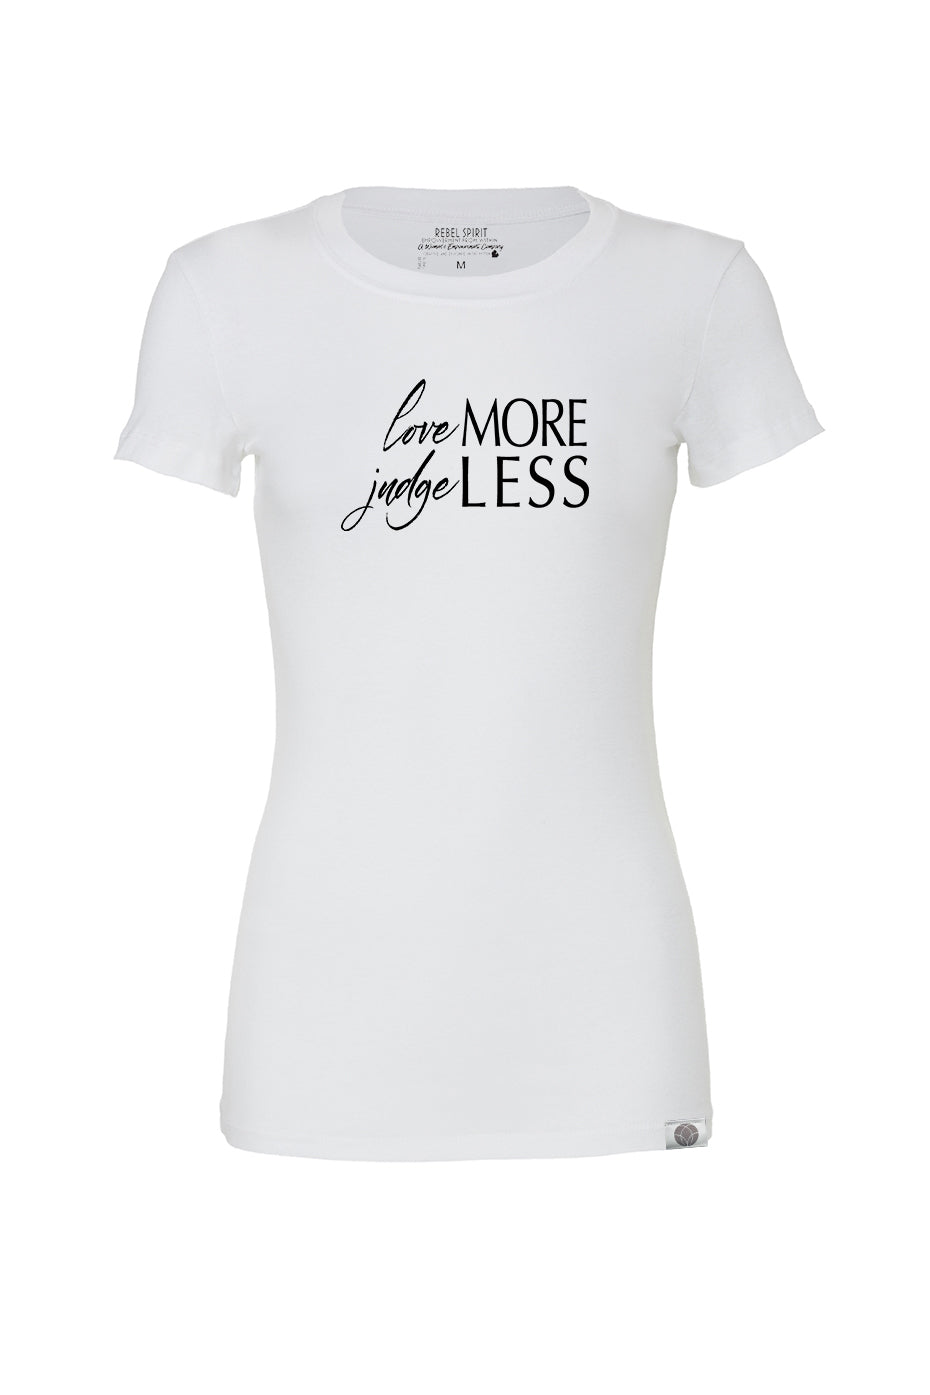 loveMORE judgeLESS Super Comfy Tee